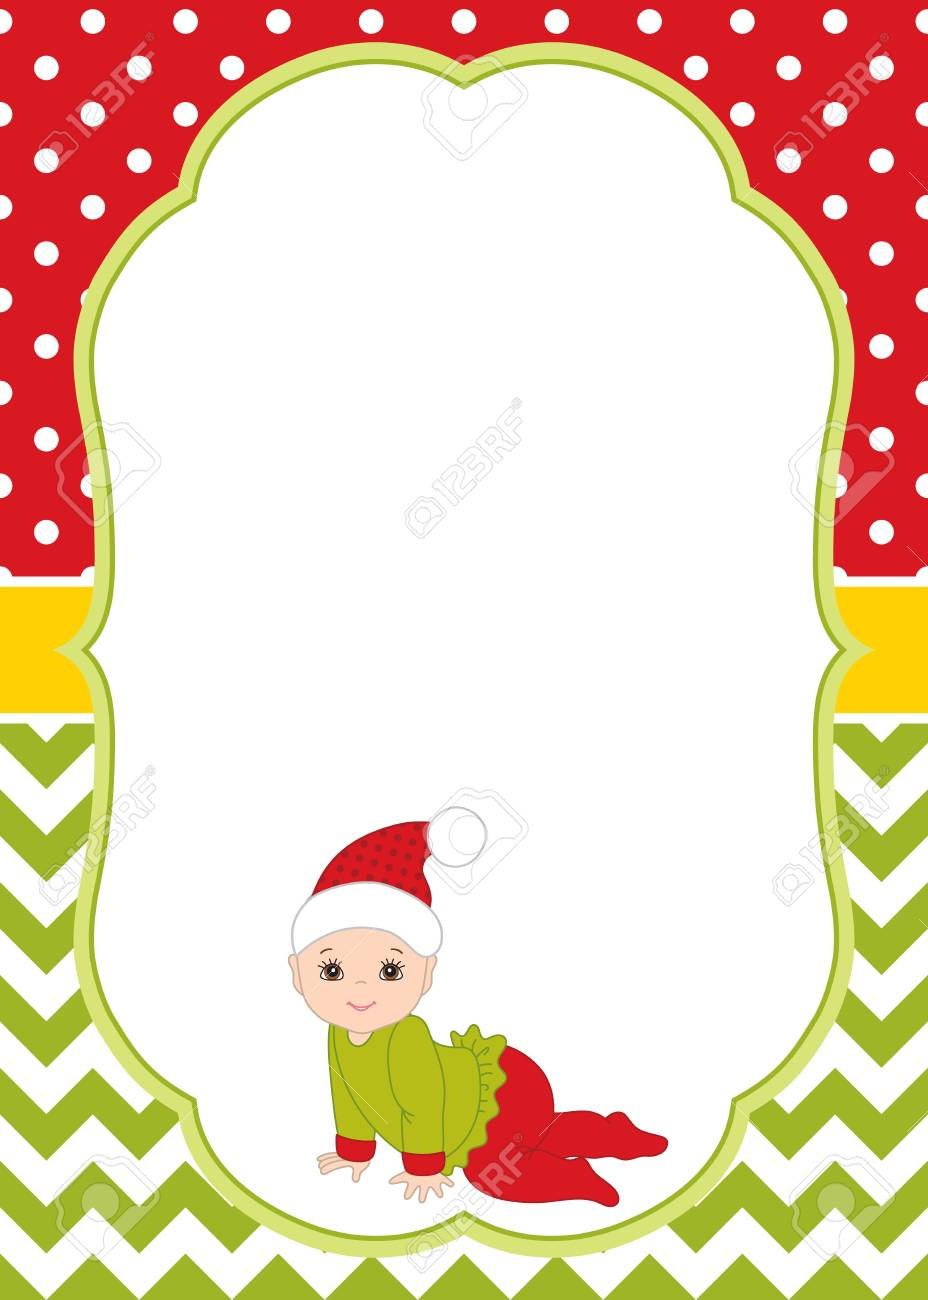 vector vector christmas and new year card template with cute baby on chevron and polka dot background christmas and new year card template for baby